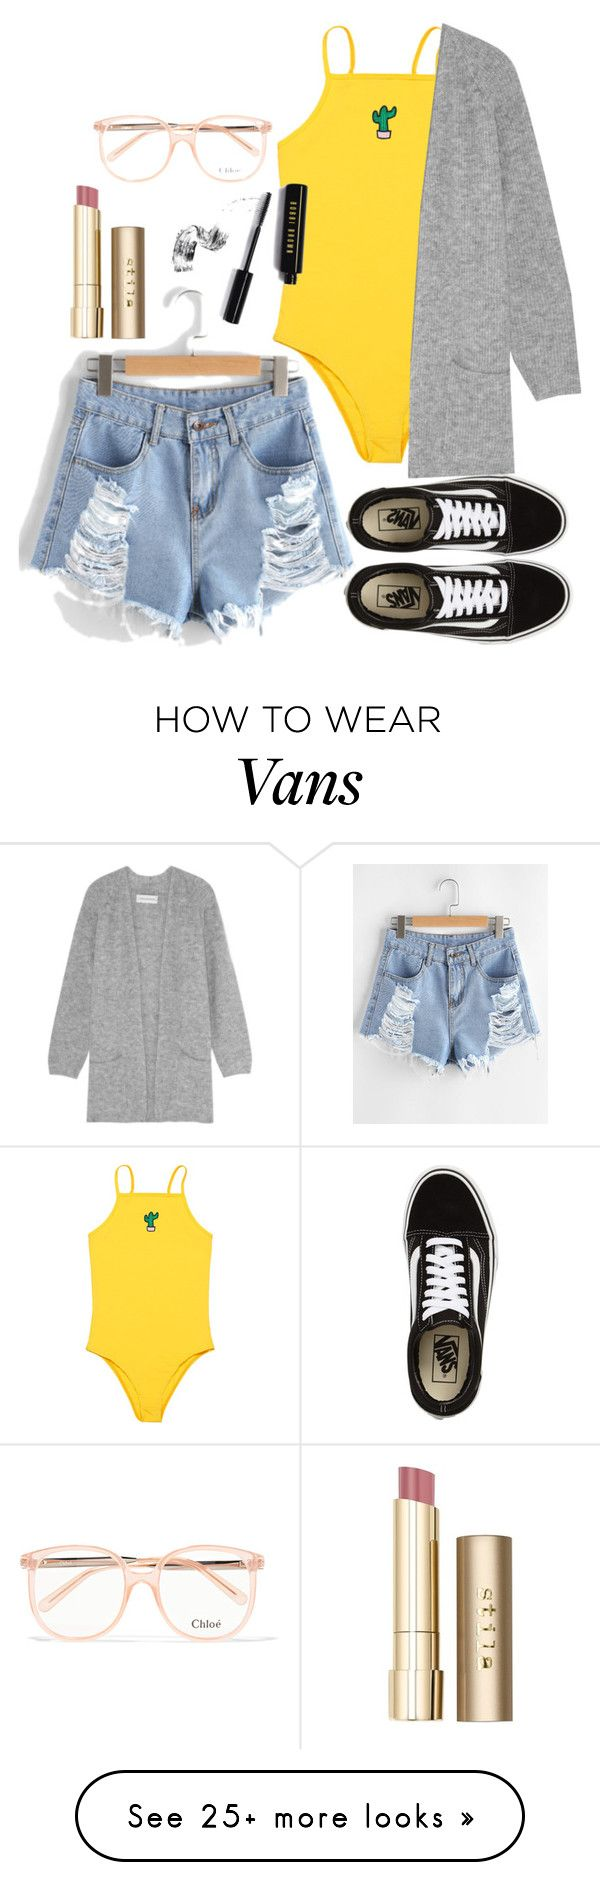 """Untitled #291"" by polyvorepolina on Polyvore featuring Vans, By Malene Birger, Bobbi Brown Cosmetics, Stila and Chloé"